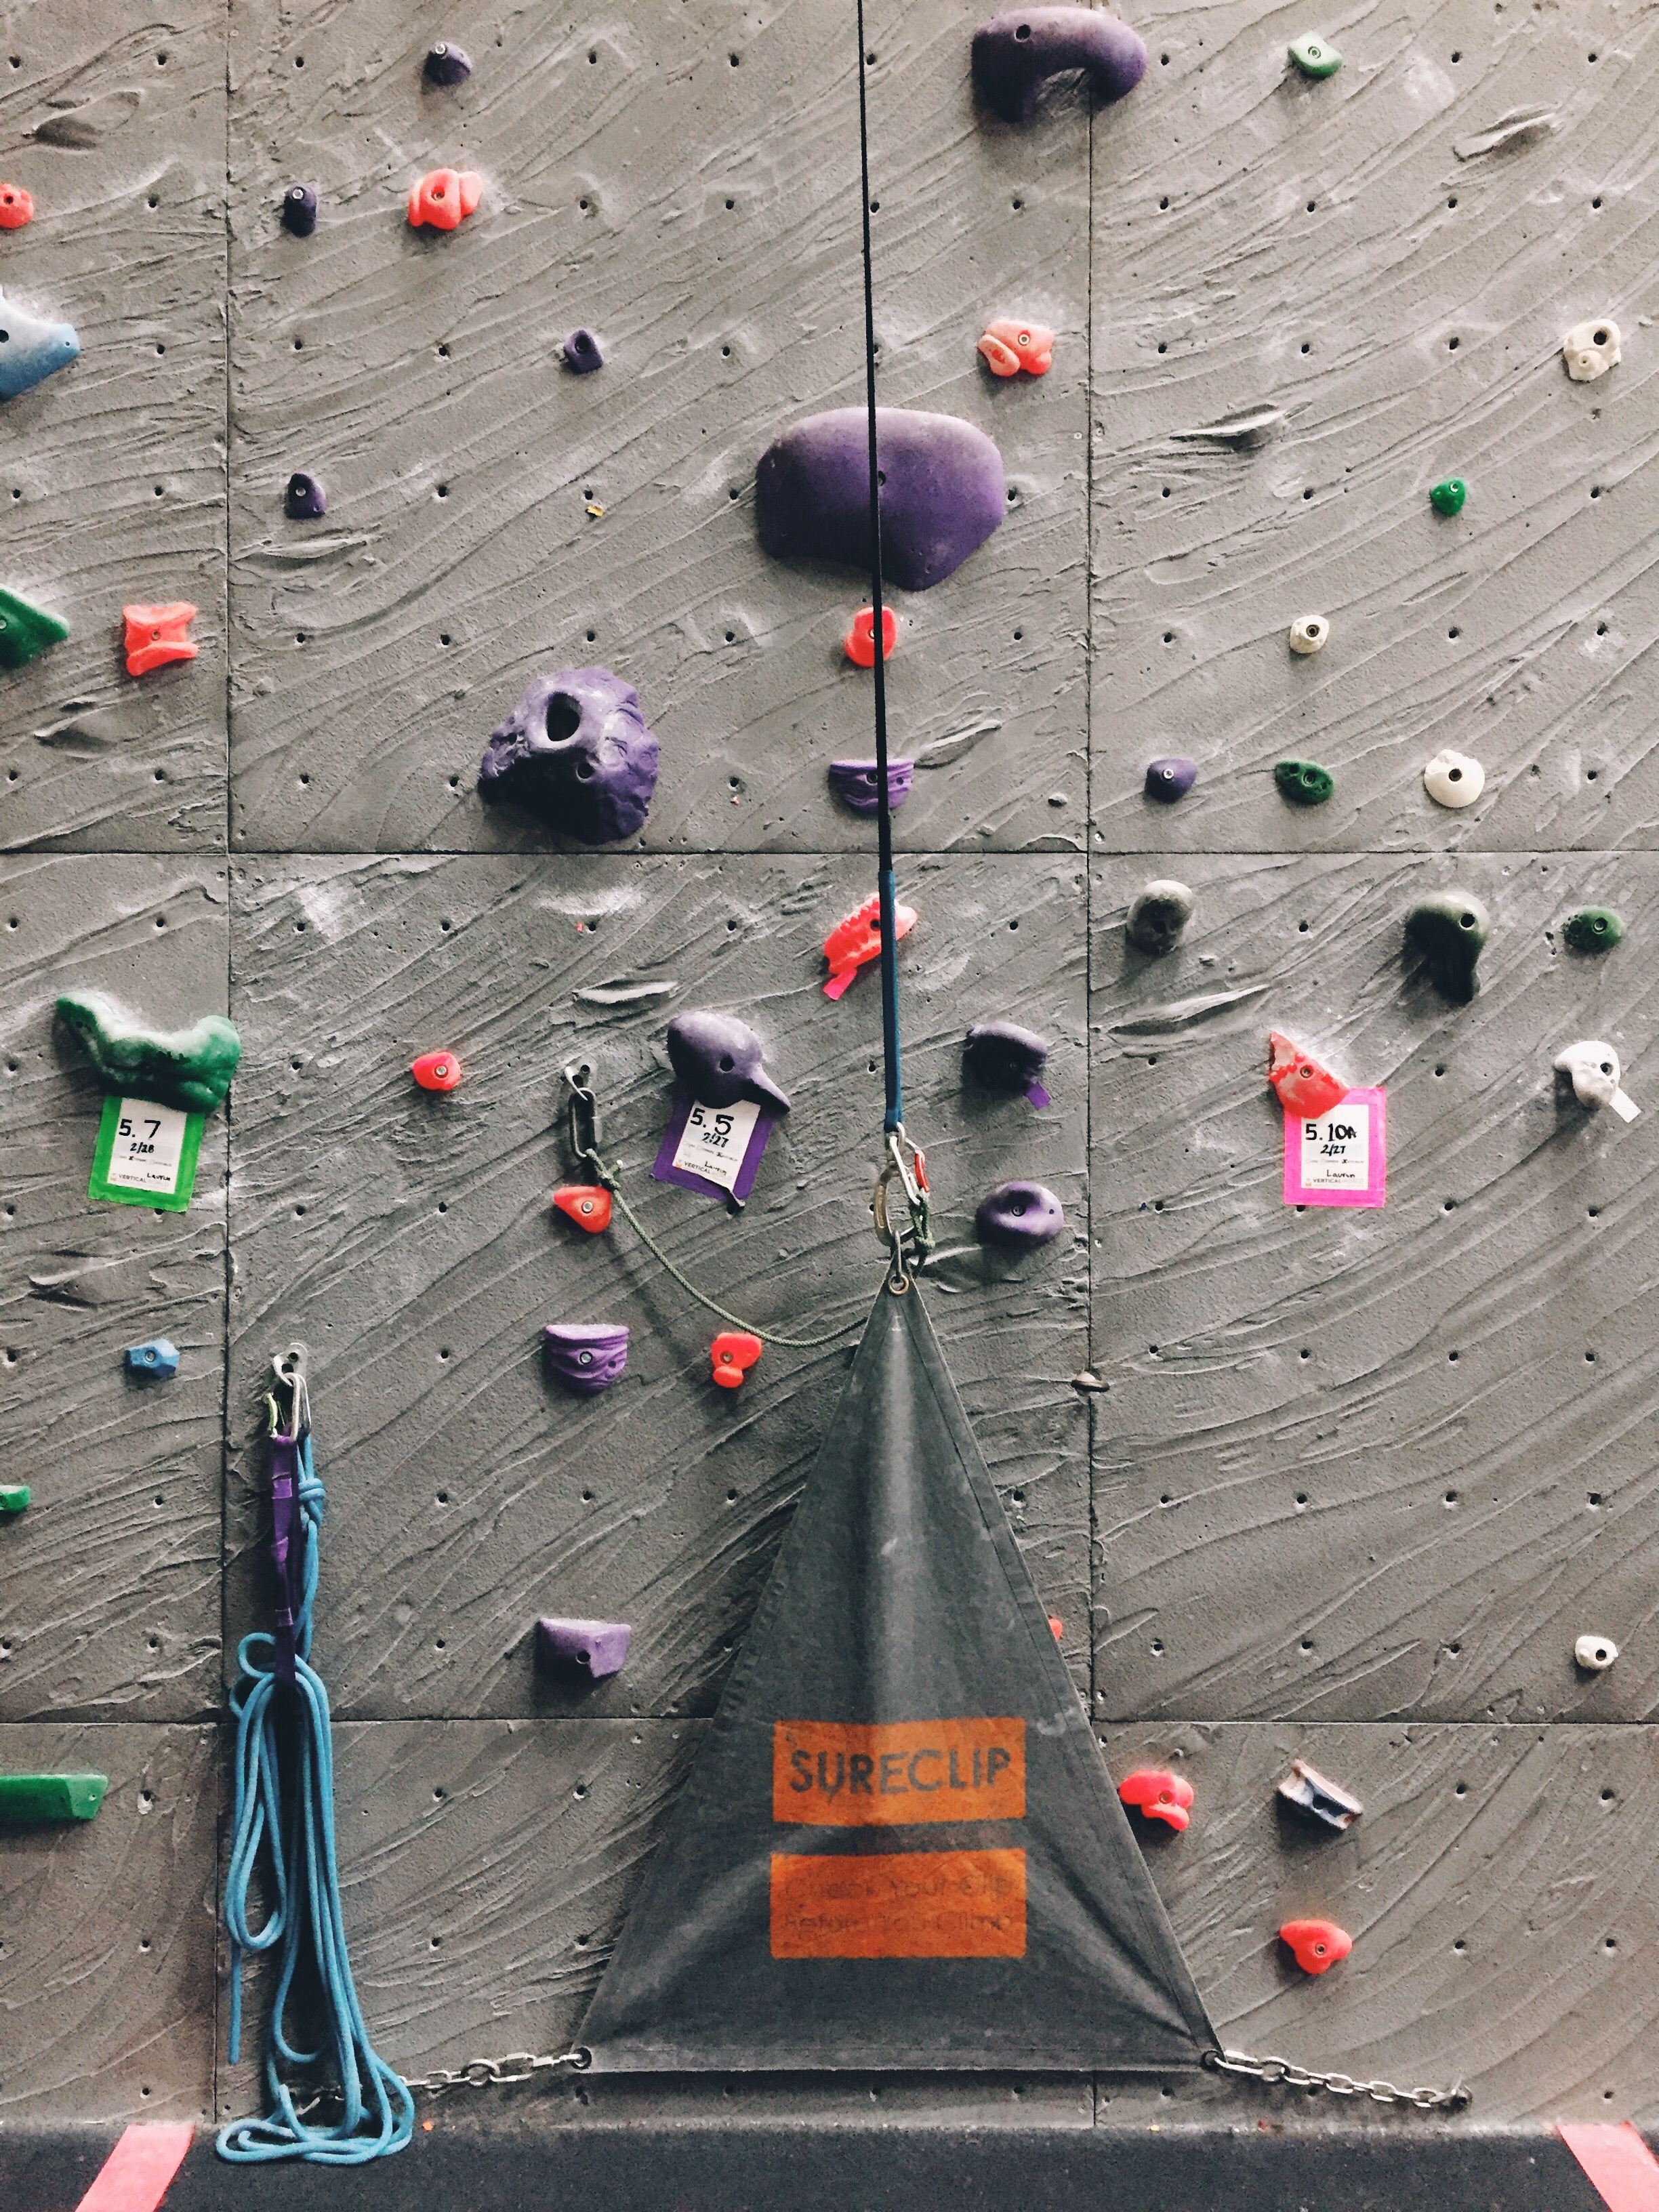 I went to the gym 3-4 times a week to practice on auto belay. I even climbed in my boots till I was finally trusting my feet and was able to climb 5.9's smoothly at the gym, with my boots. I was finally ready for the Tooth, I think.